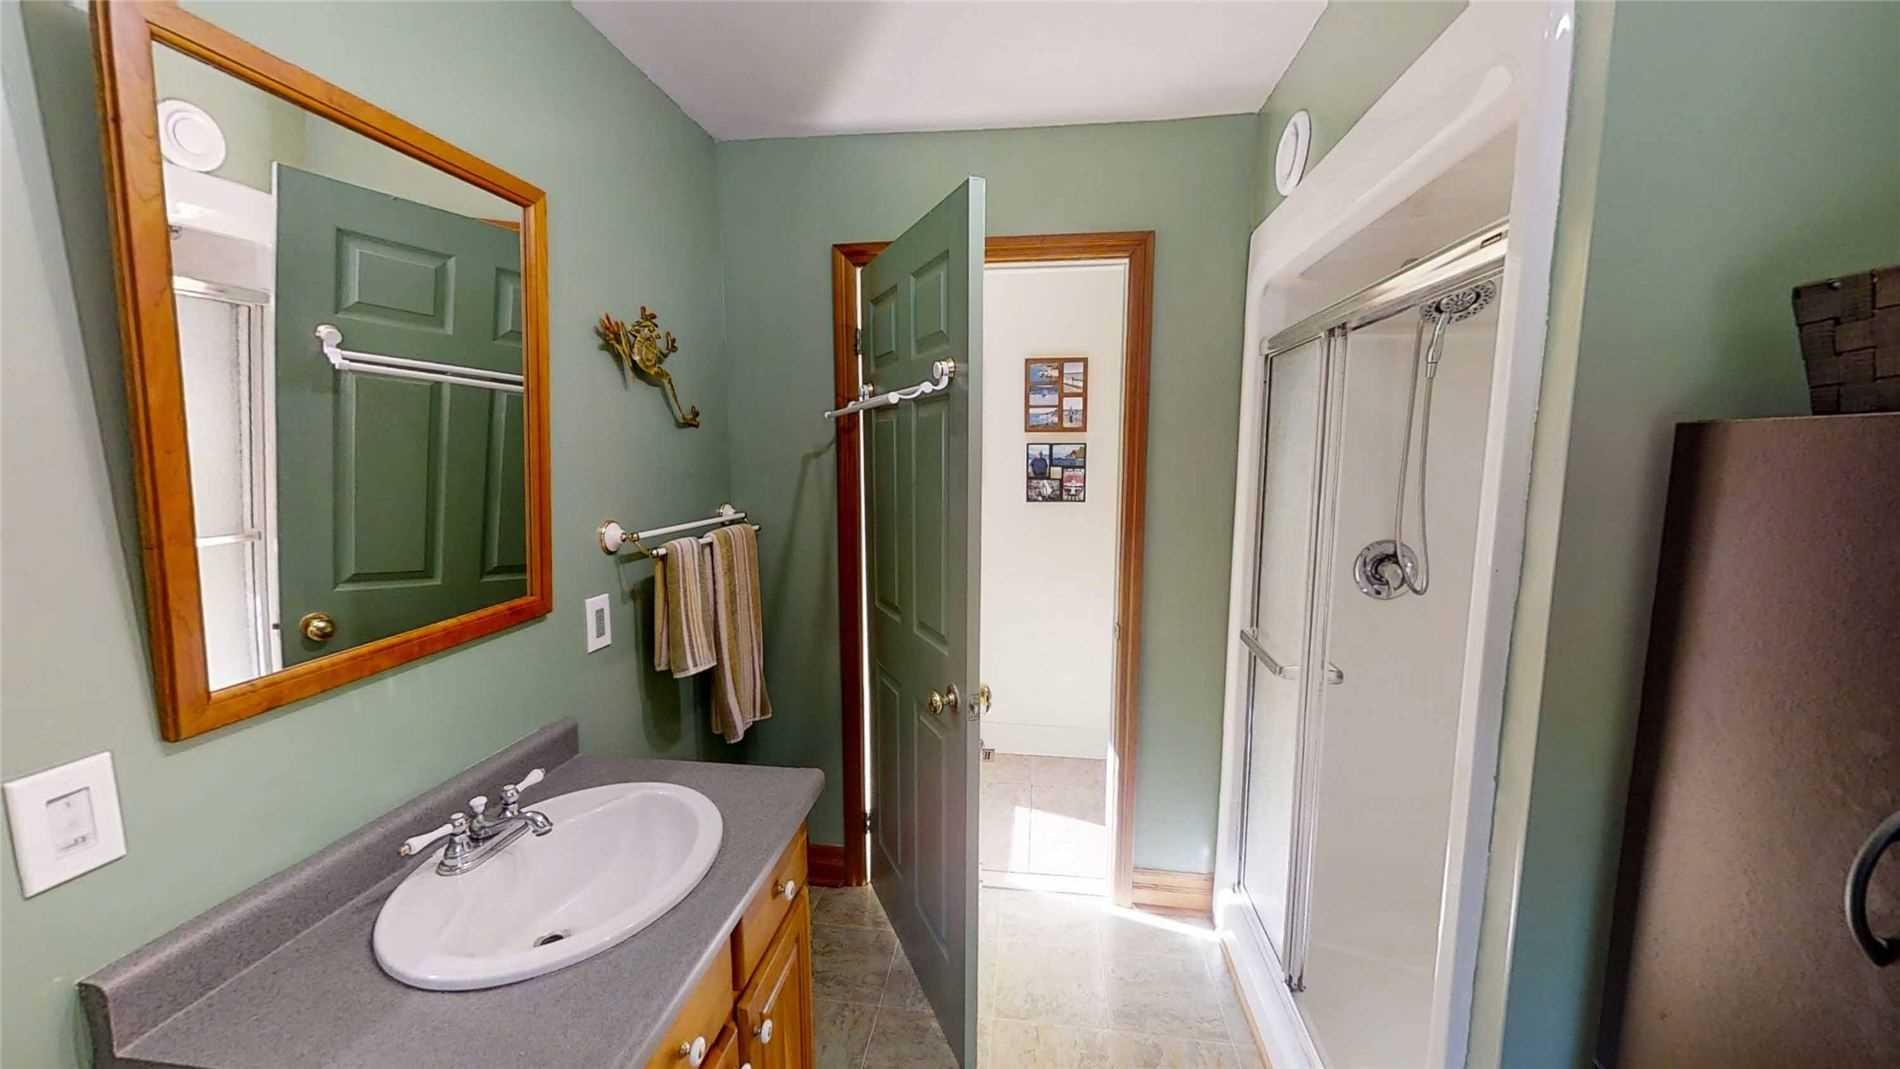 Detached house For Sale In Chatsworth - 837017 Taylor Dr, Chatsworth, Ontario, Canada N0H1R0 , 3 Bedrooms Bedrooms, ,2 BathroomsBathrooms,Detached,For Sale,Taylor